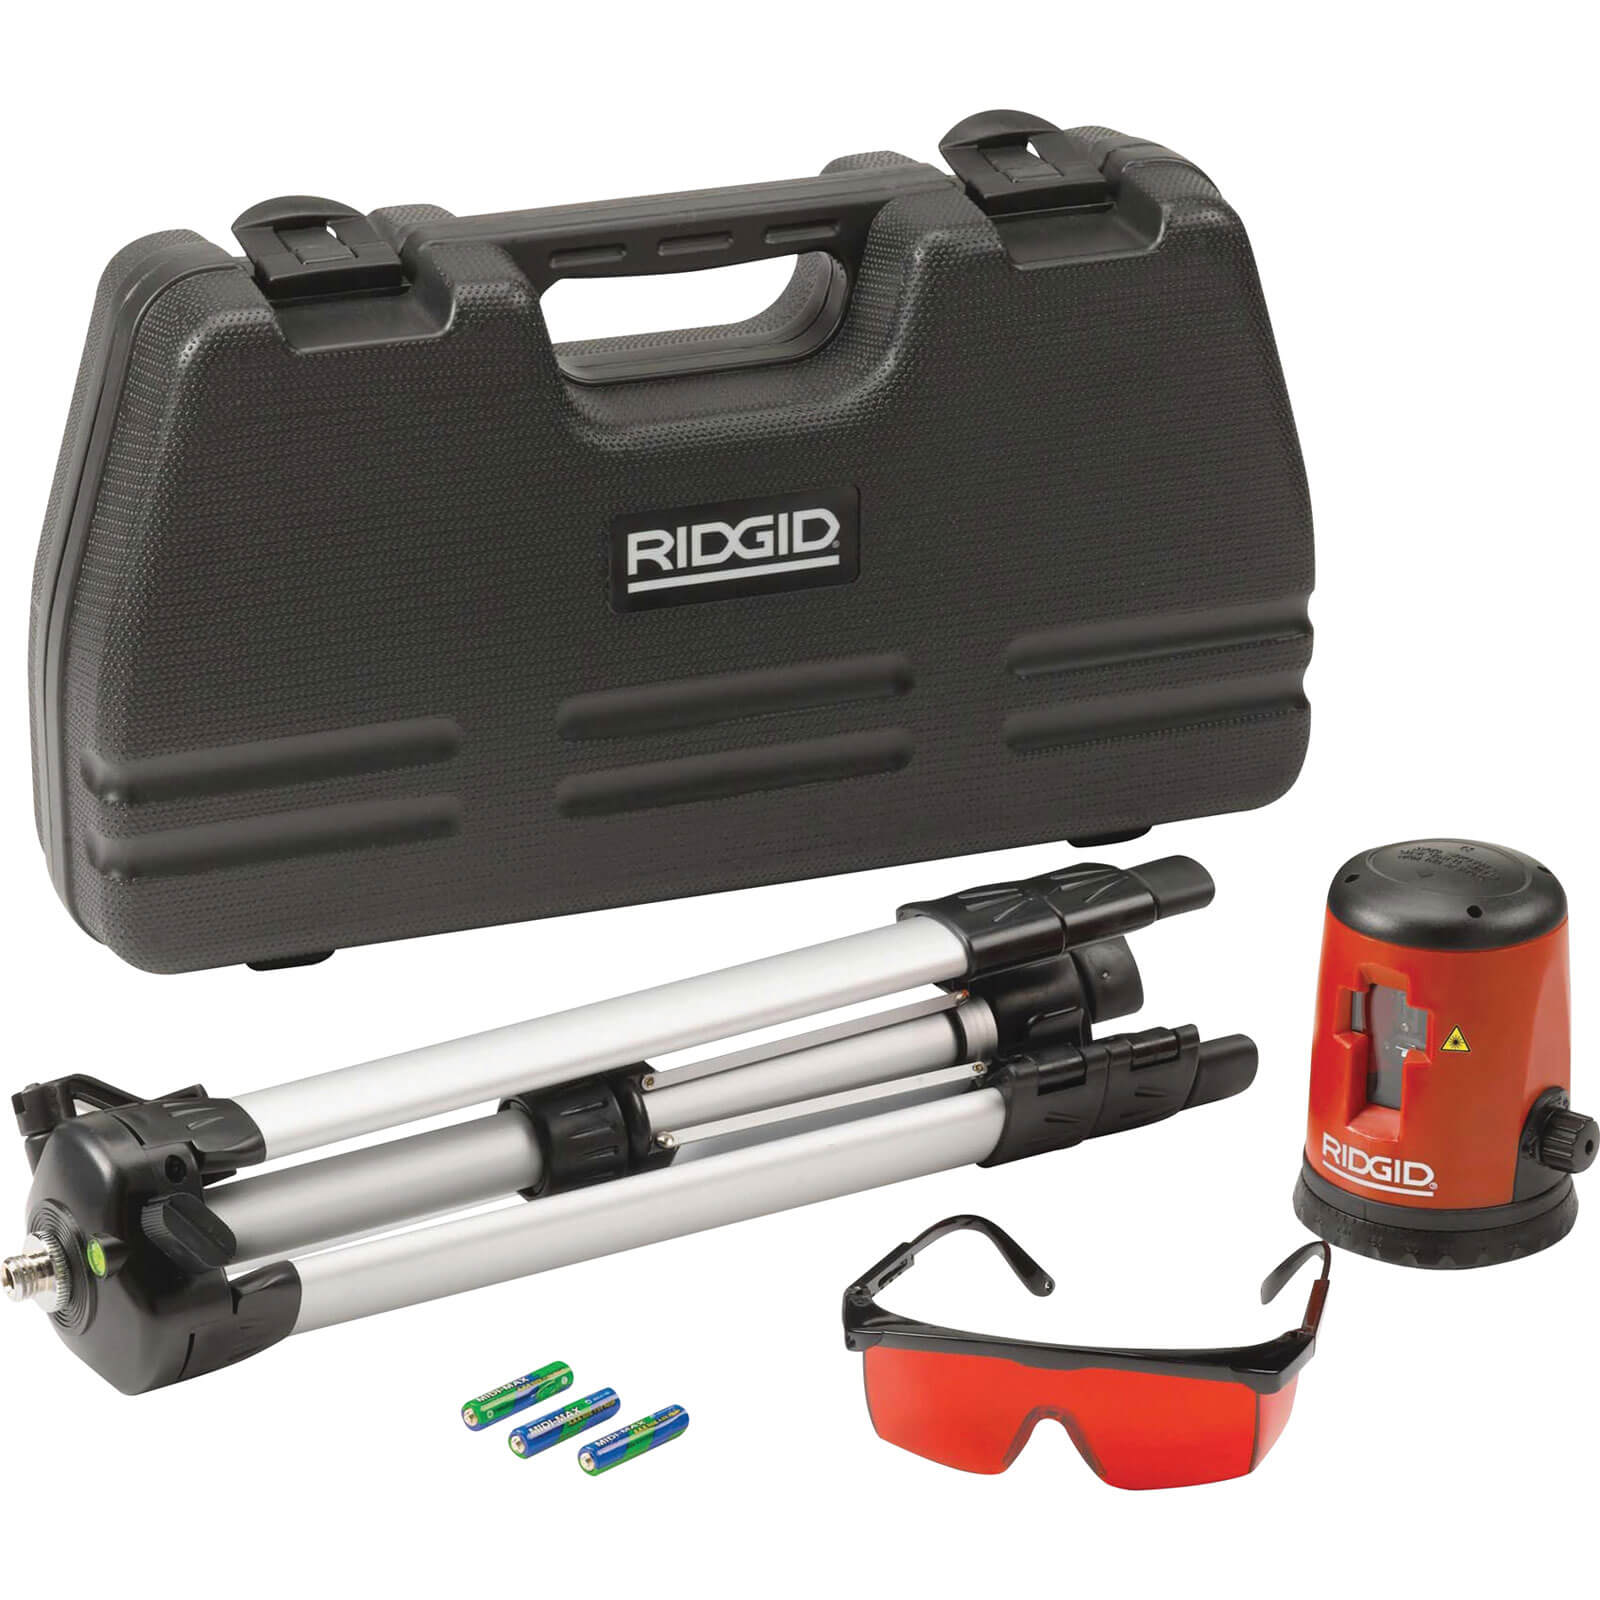 Ridgid CL100 Micro Self Levelling Cross Line Laser Level